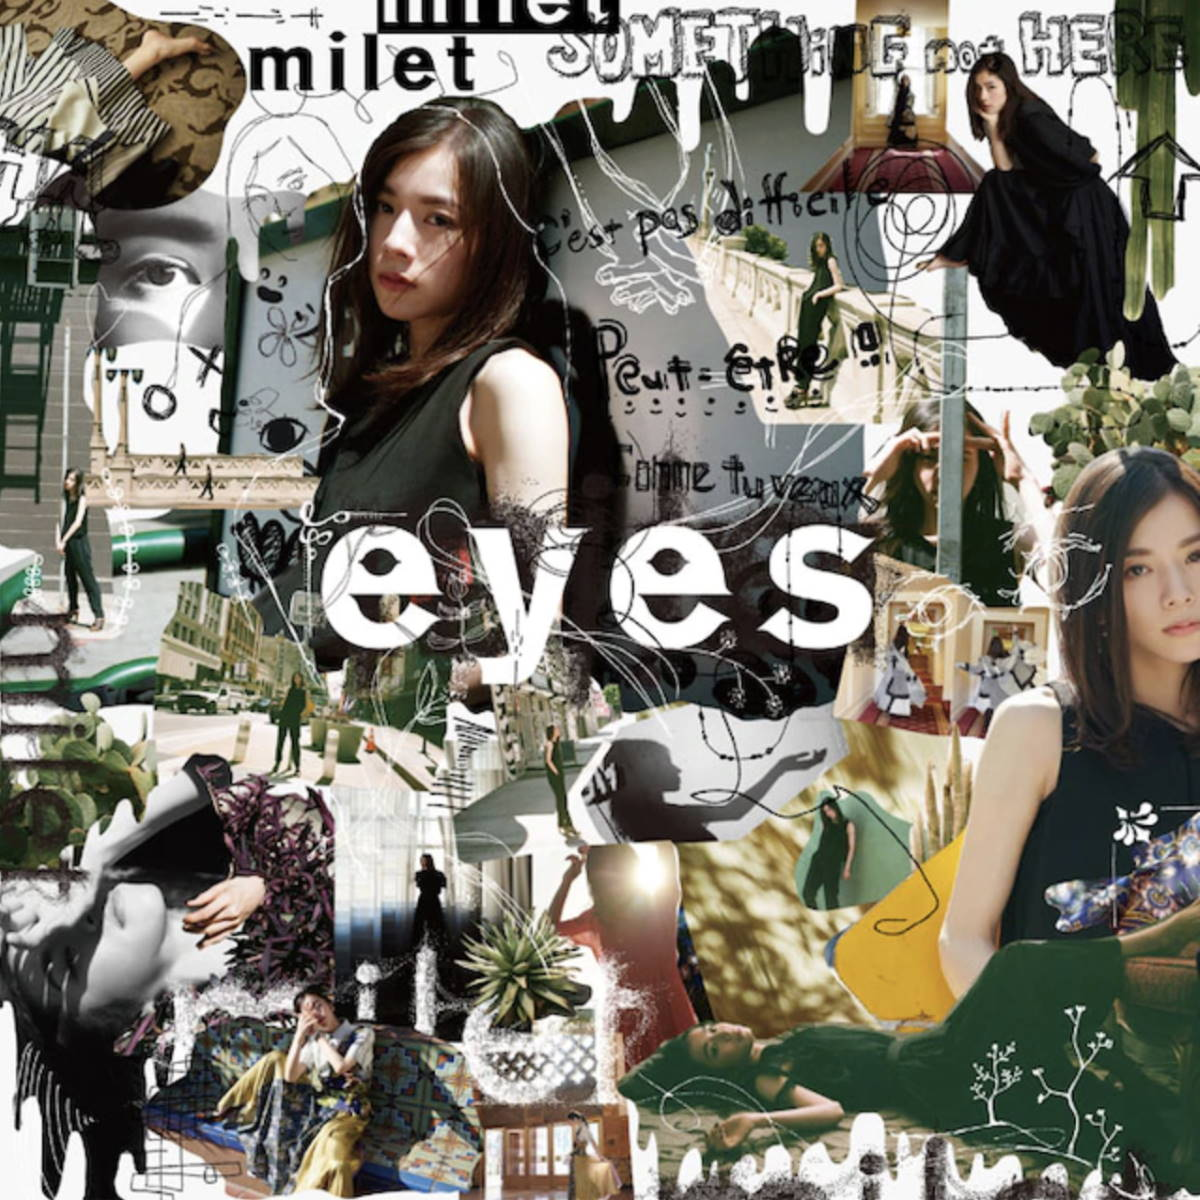 『milet - The Love We've Made』収録の『eyes』ジャケット